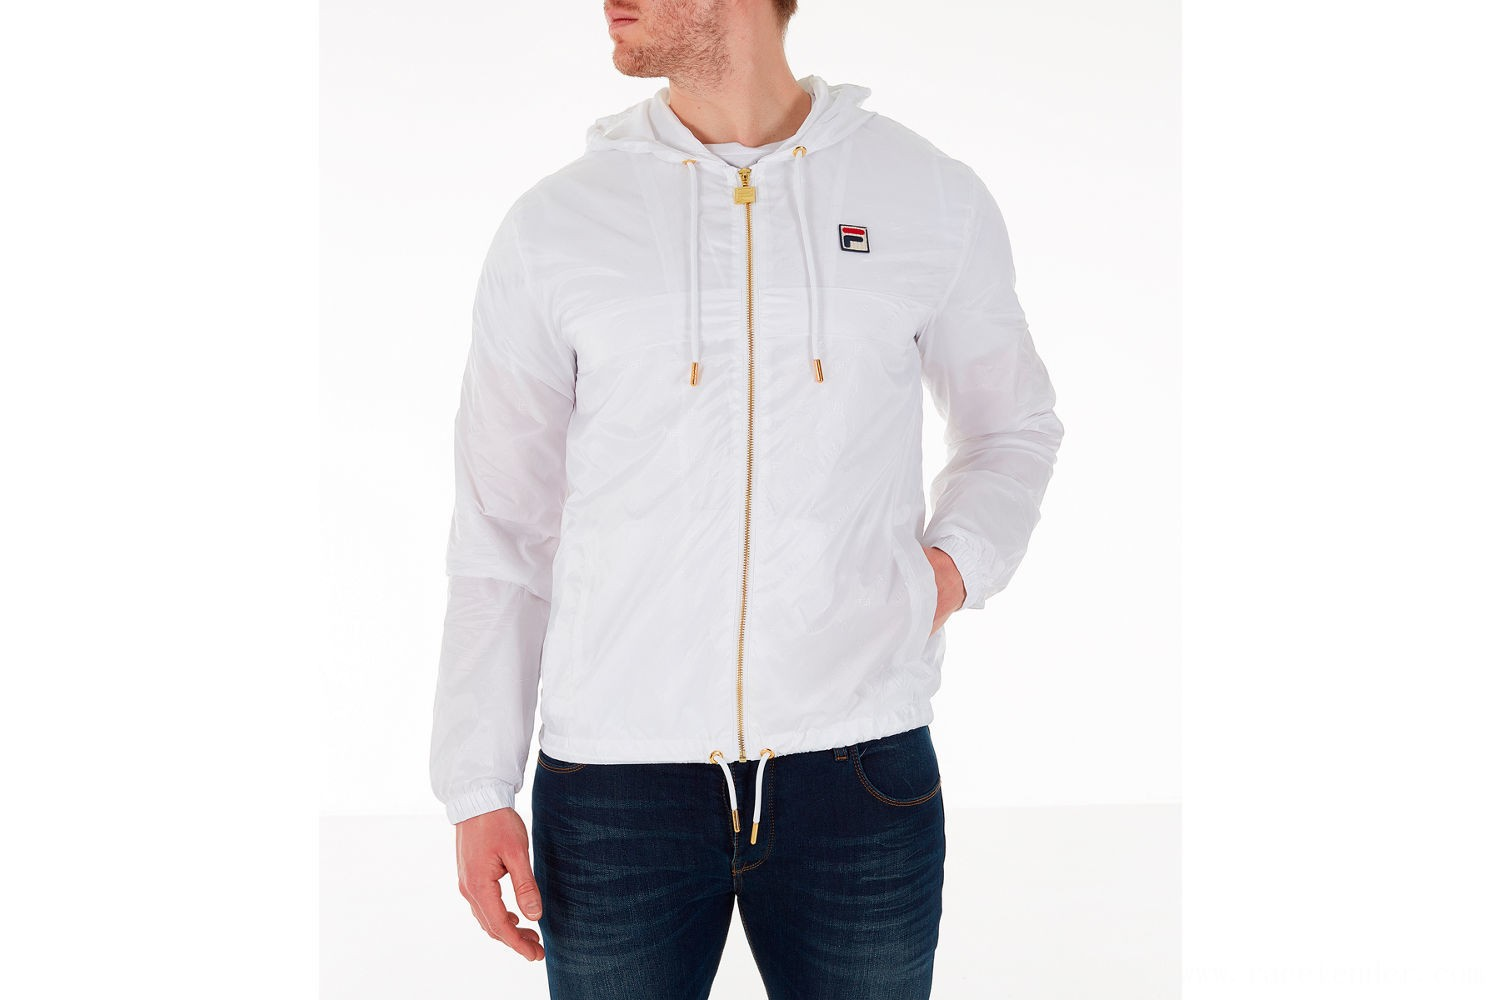 Fila Men's Copper Full-Zip Wind Jacket - White